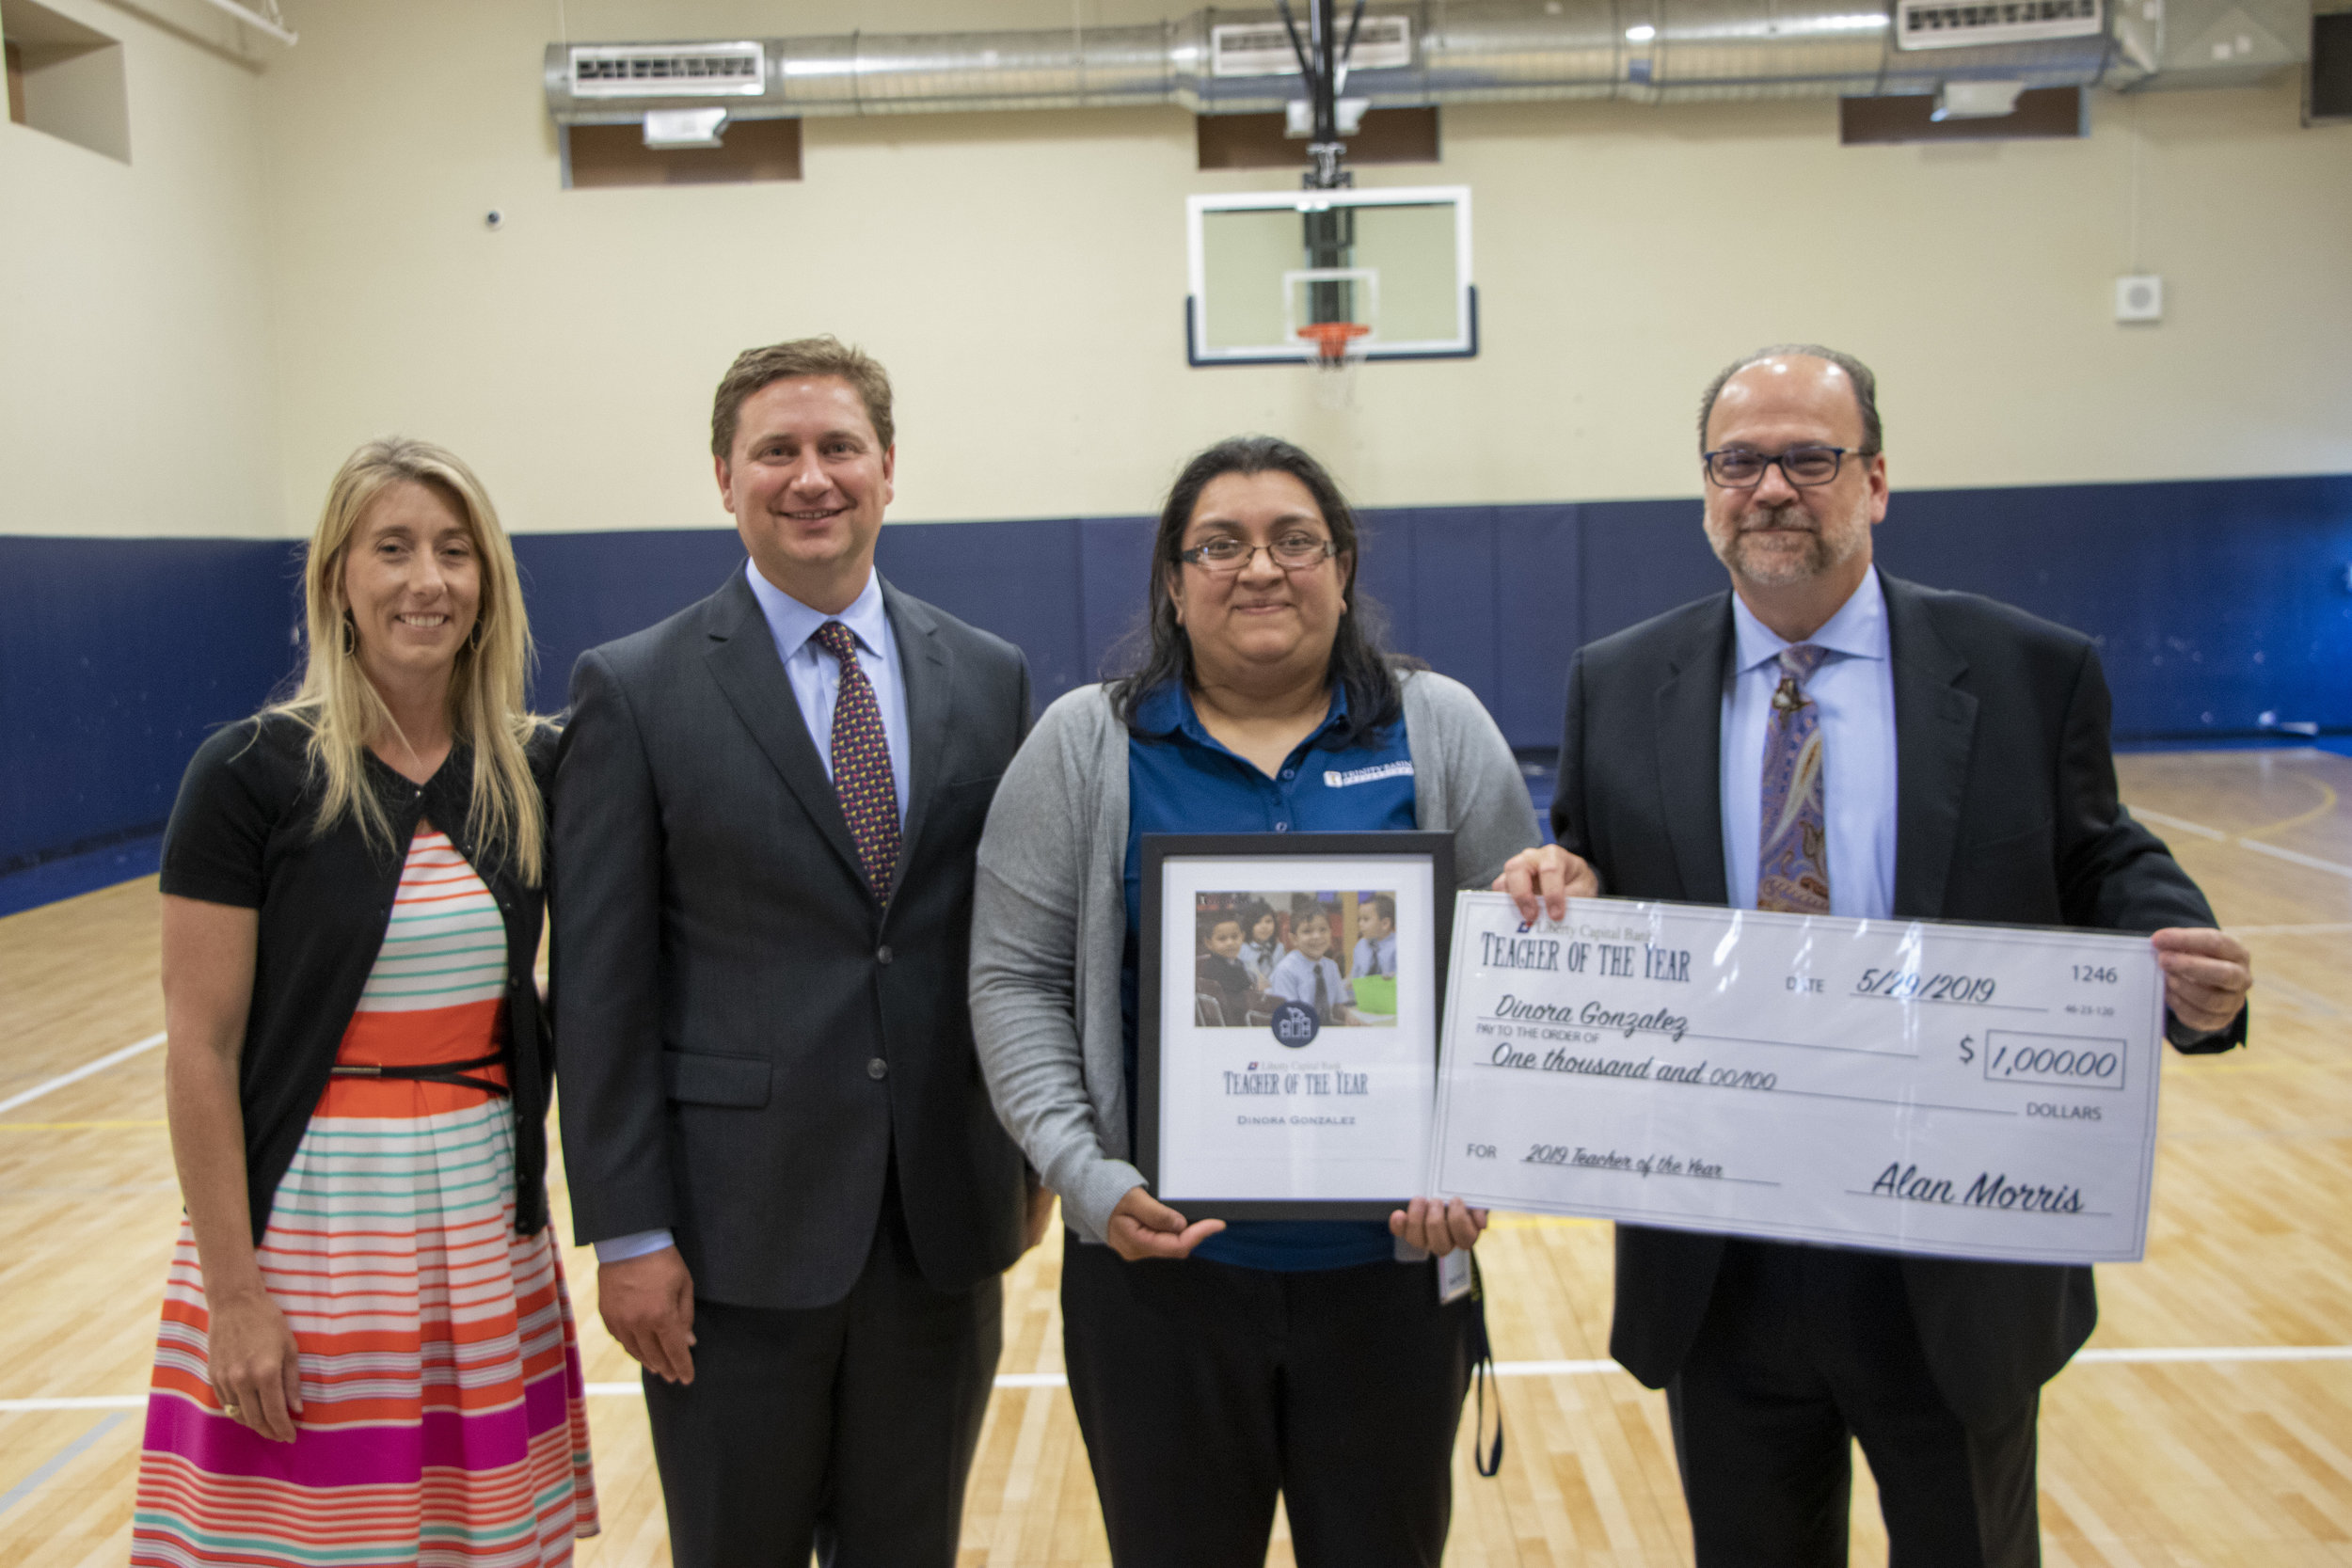 Liberty Capital Bank Teacher of the Year 2019 Award Ceremony